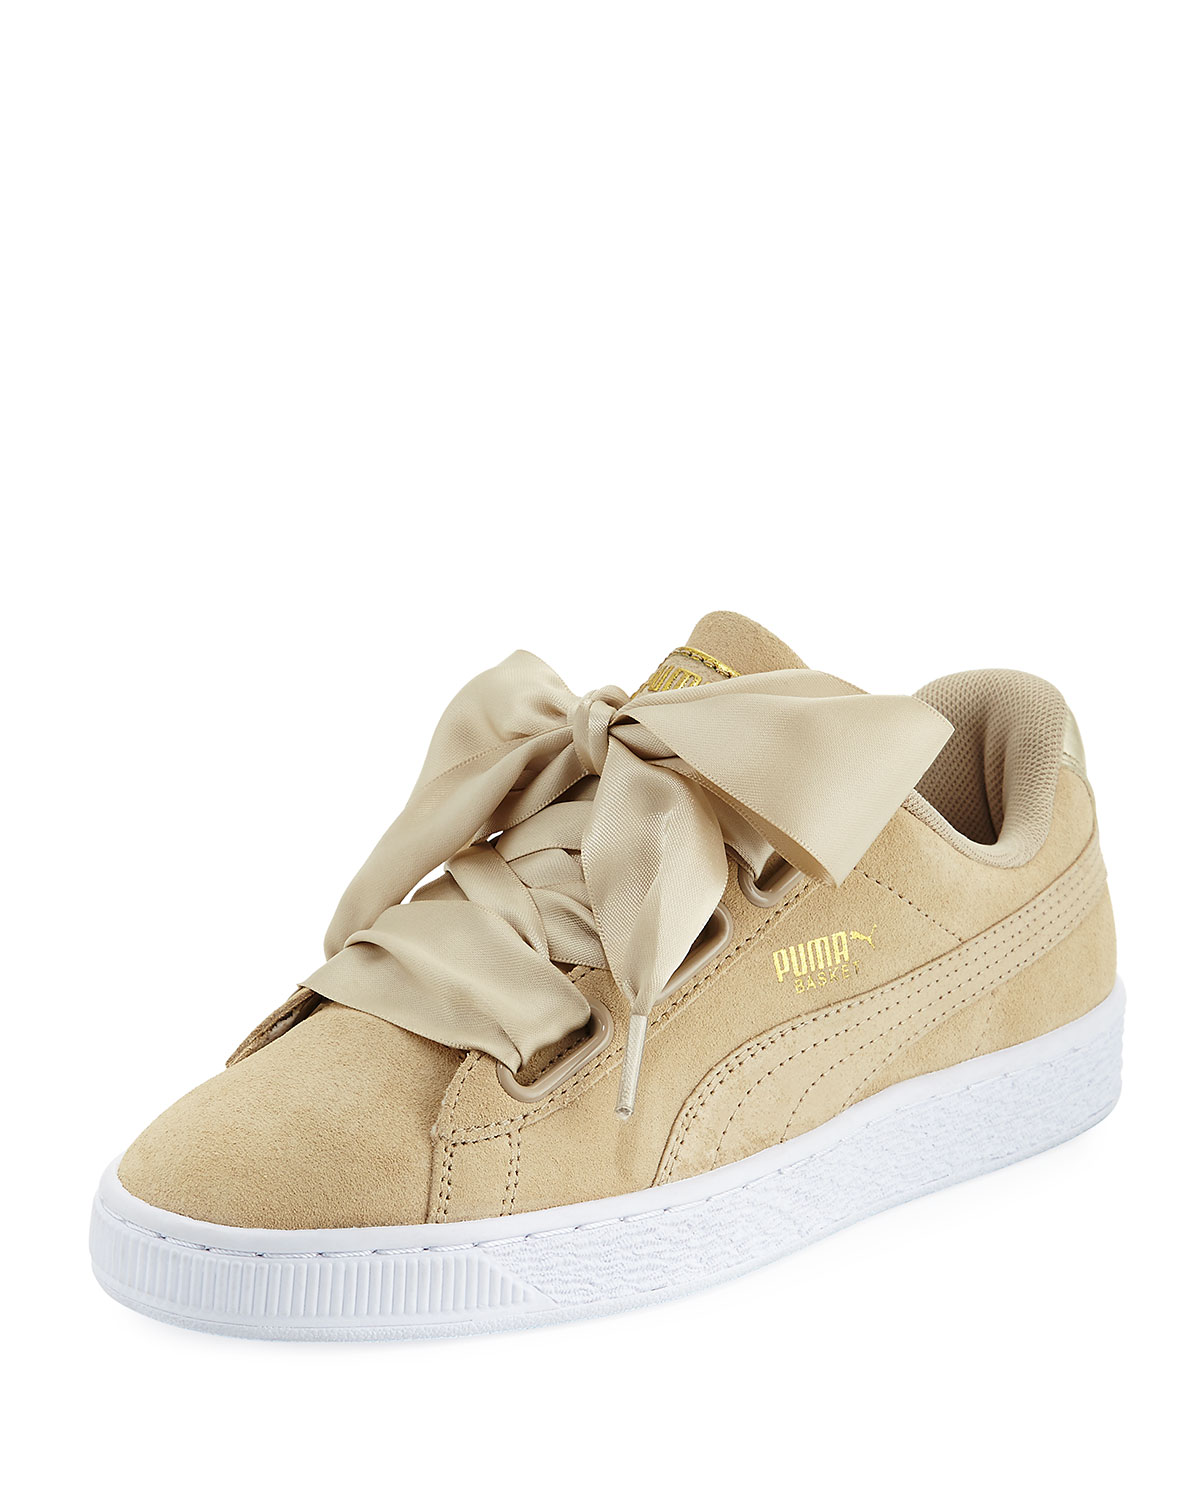 newest collection fdc25 7fb5d Puma Suede Heart Satin Sneakers - Safari